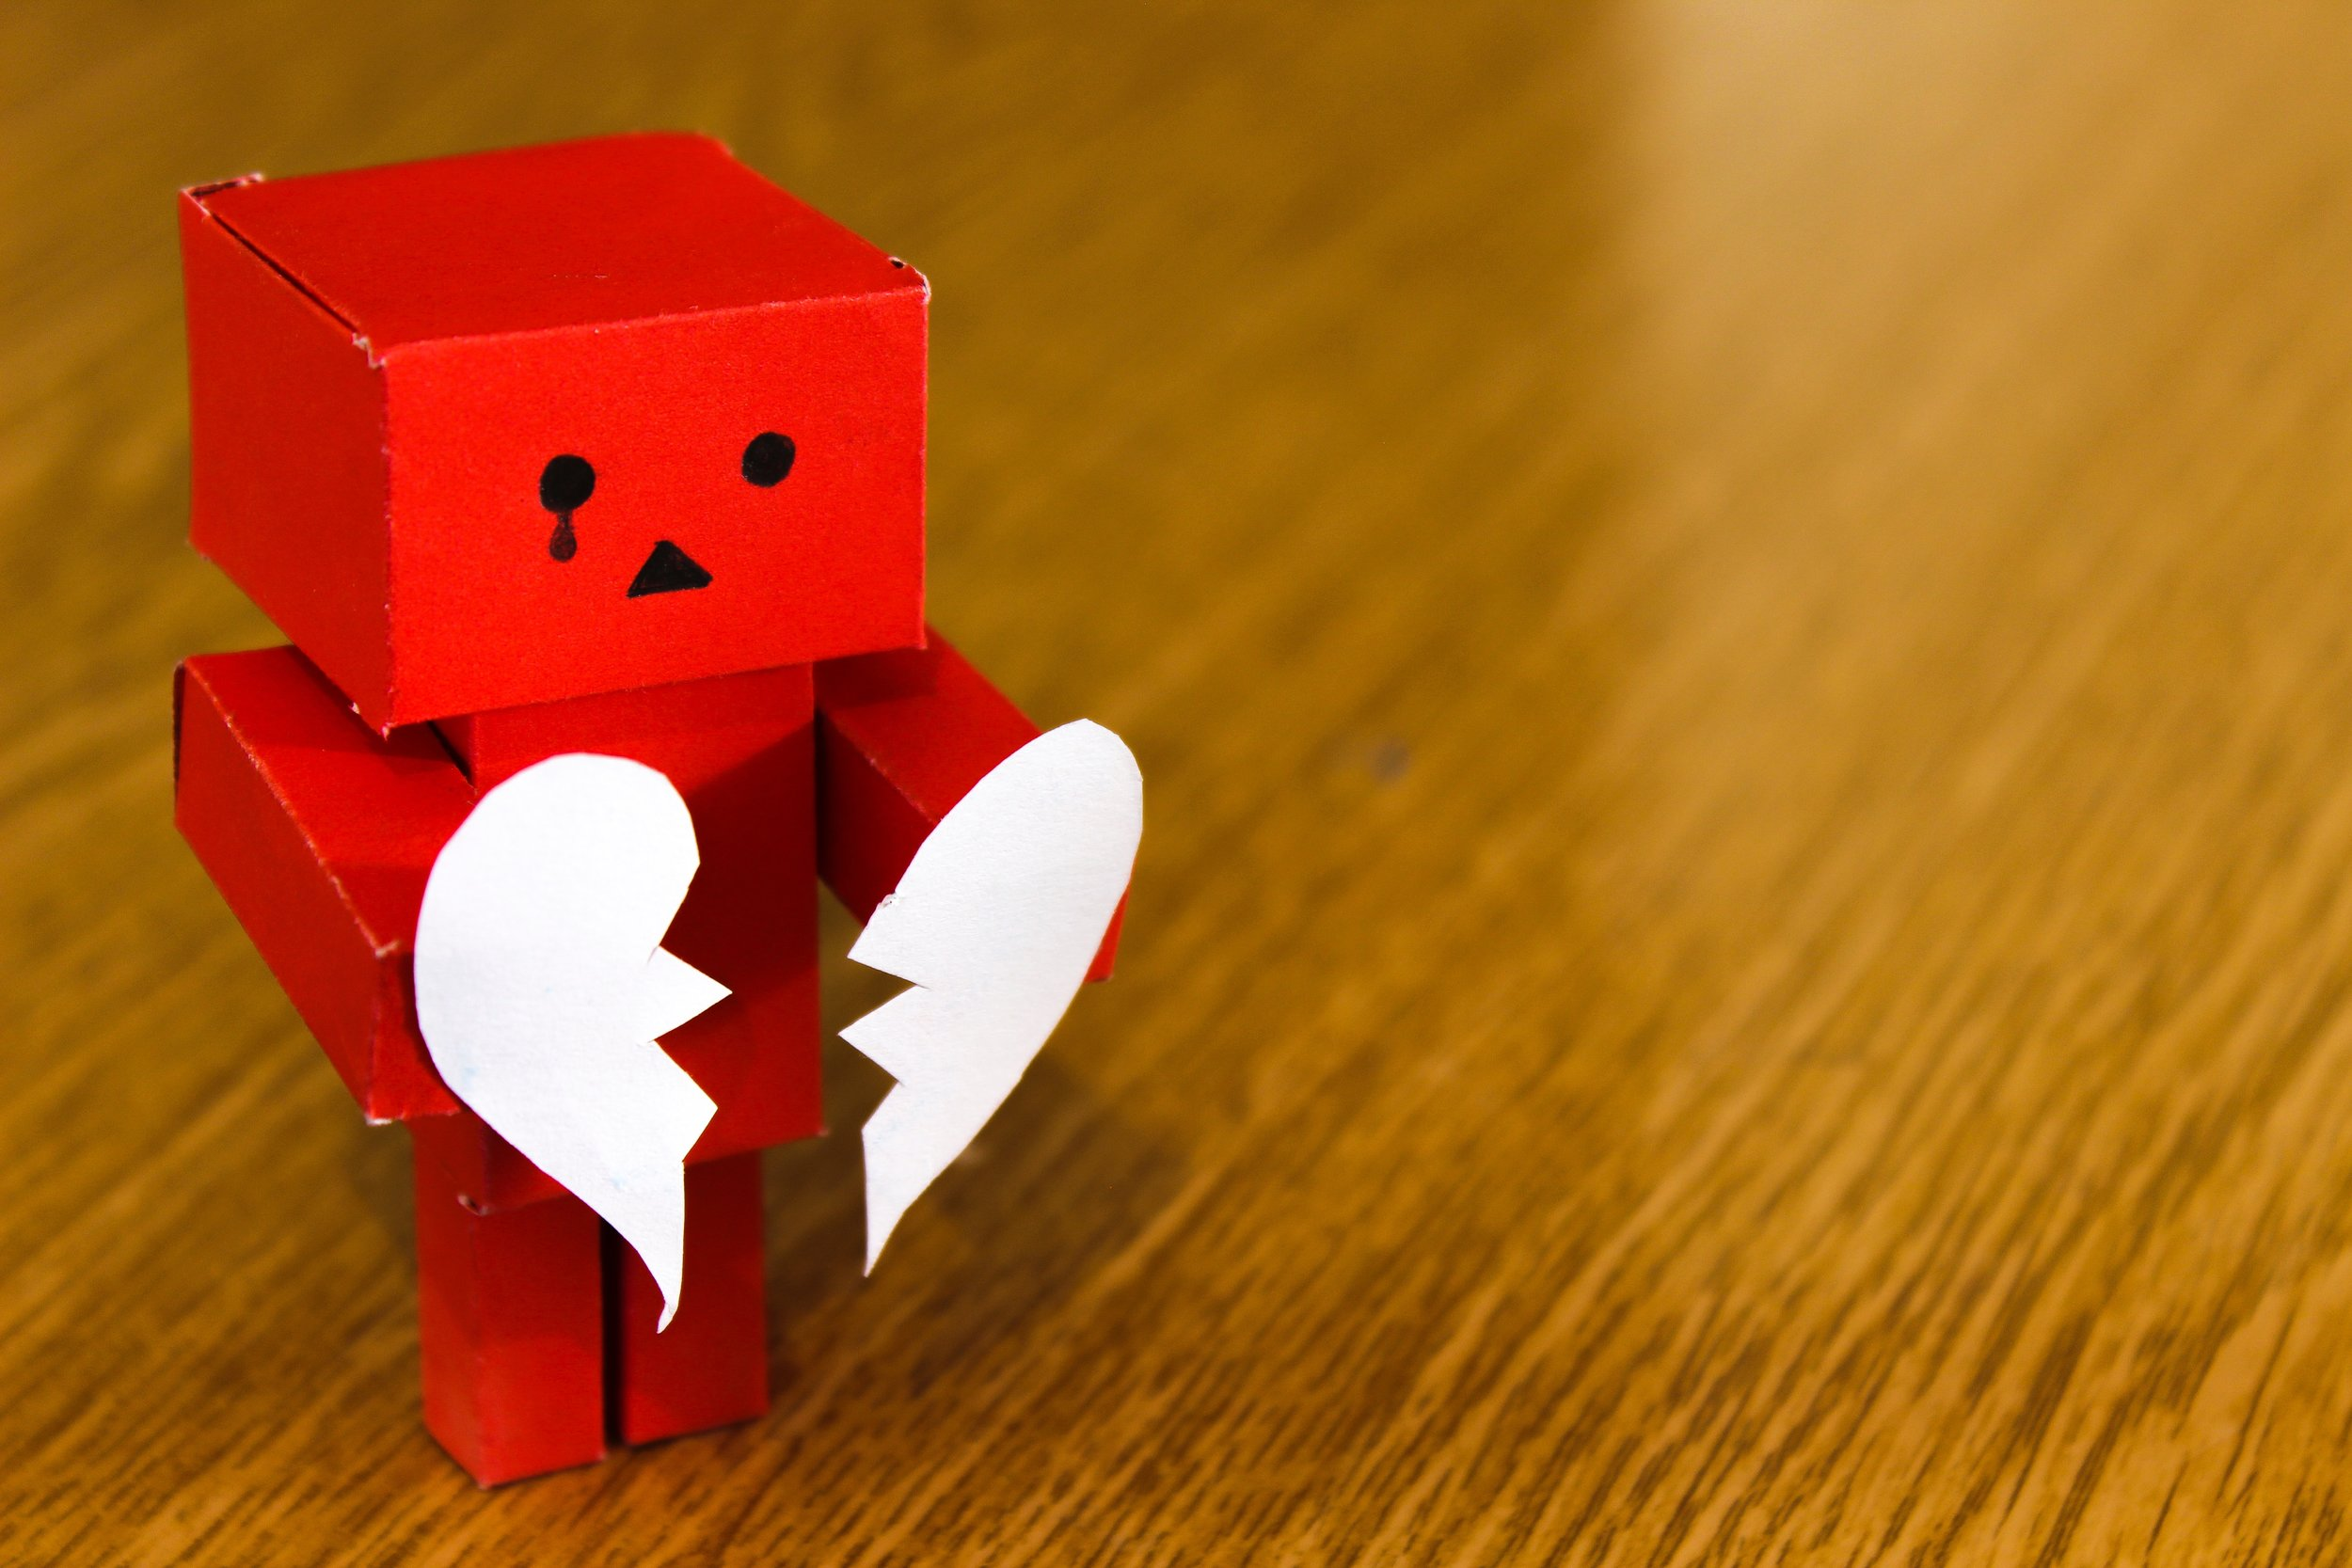 break-up-breakup-broken-14303.jpg